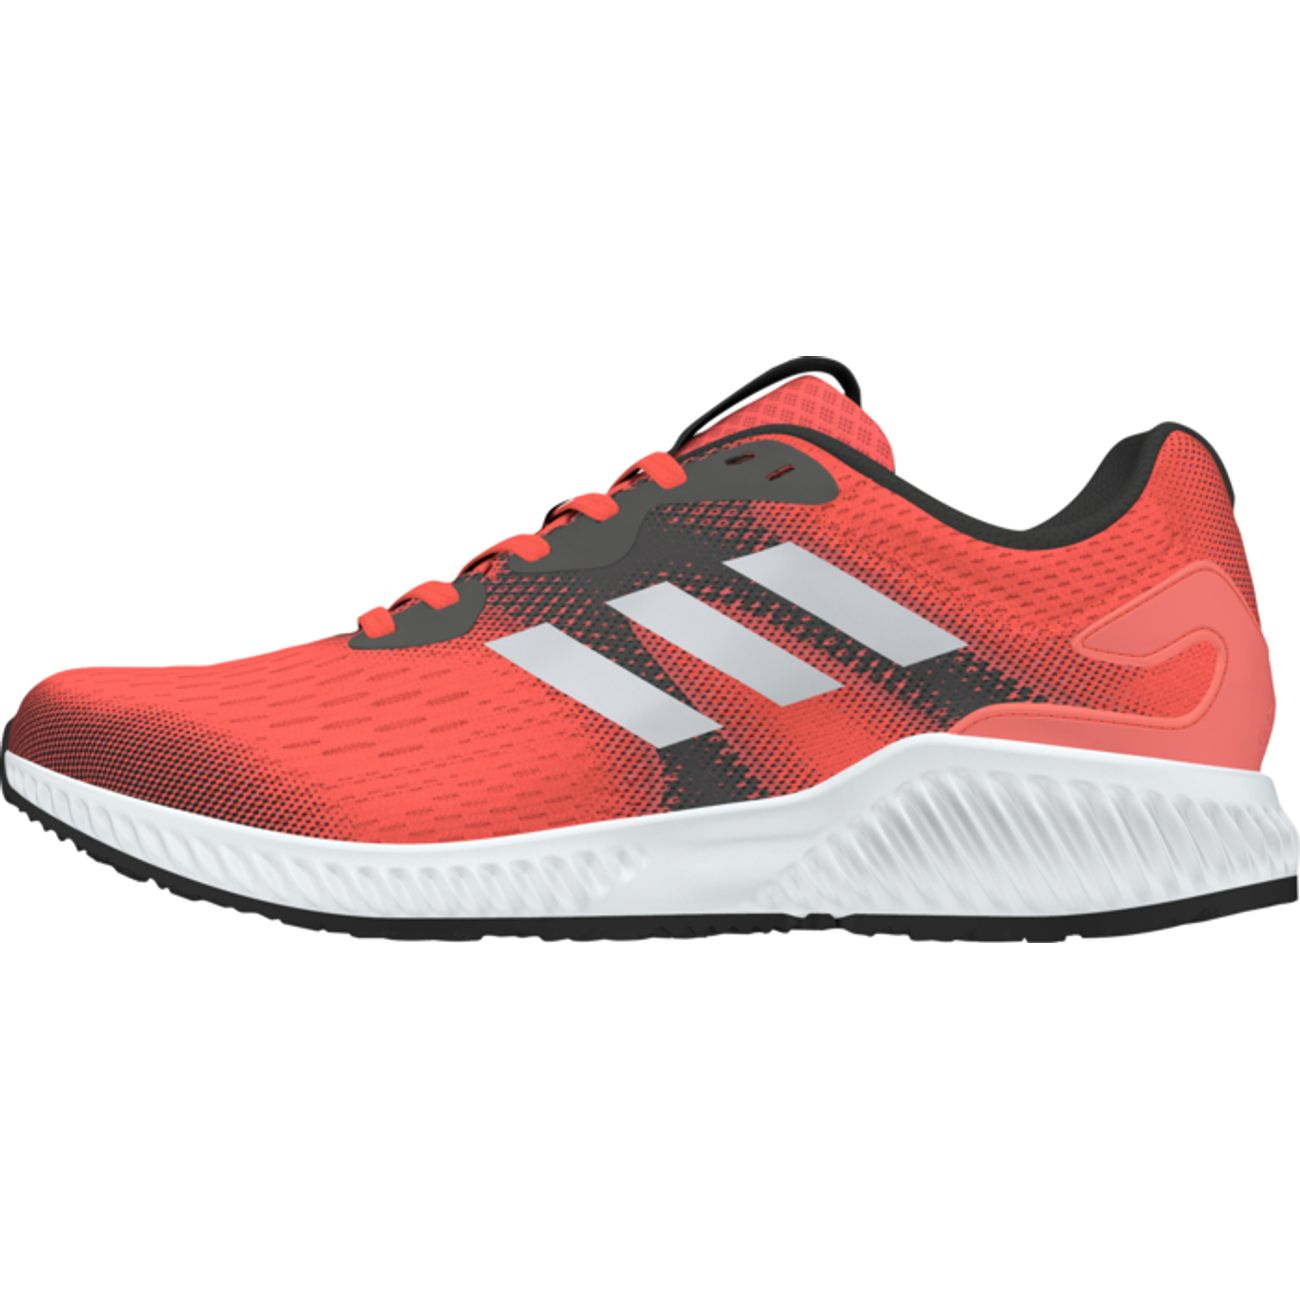 reputable site 17afb 17c2d CHAUSSURES BASSES ADIDAS AEROBOUNCE ...